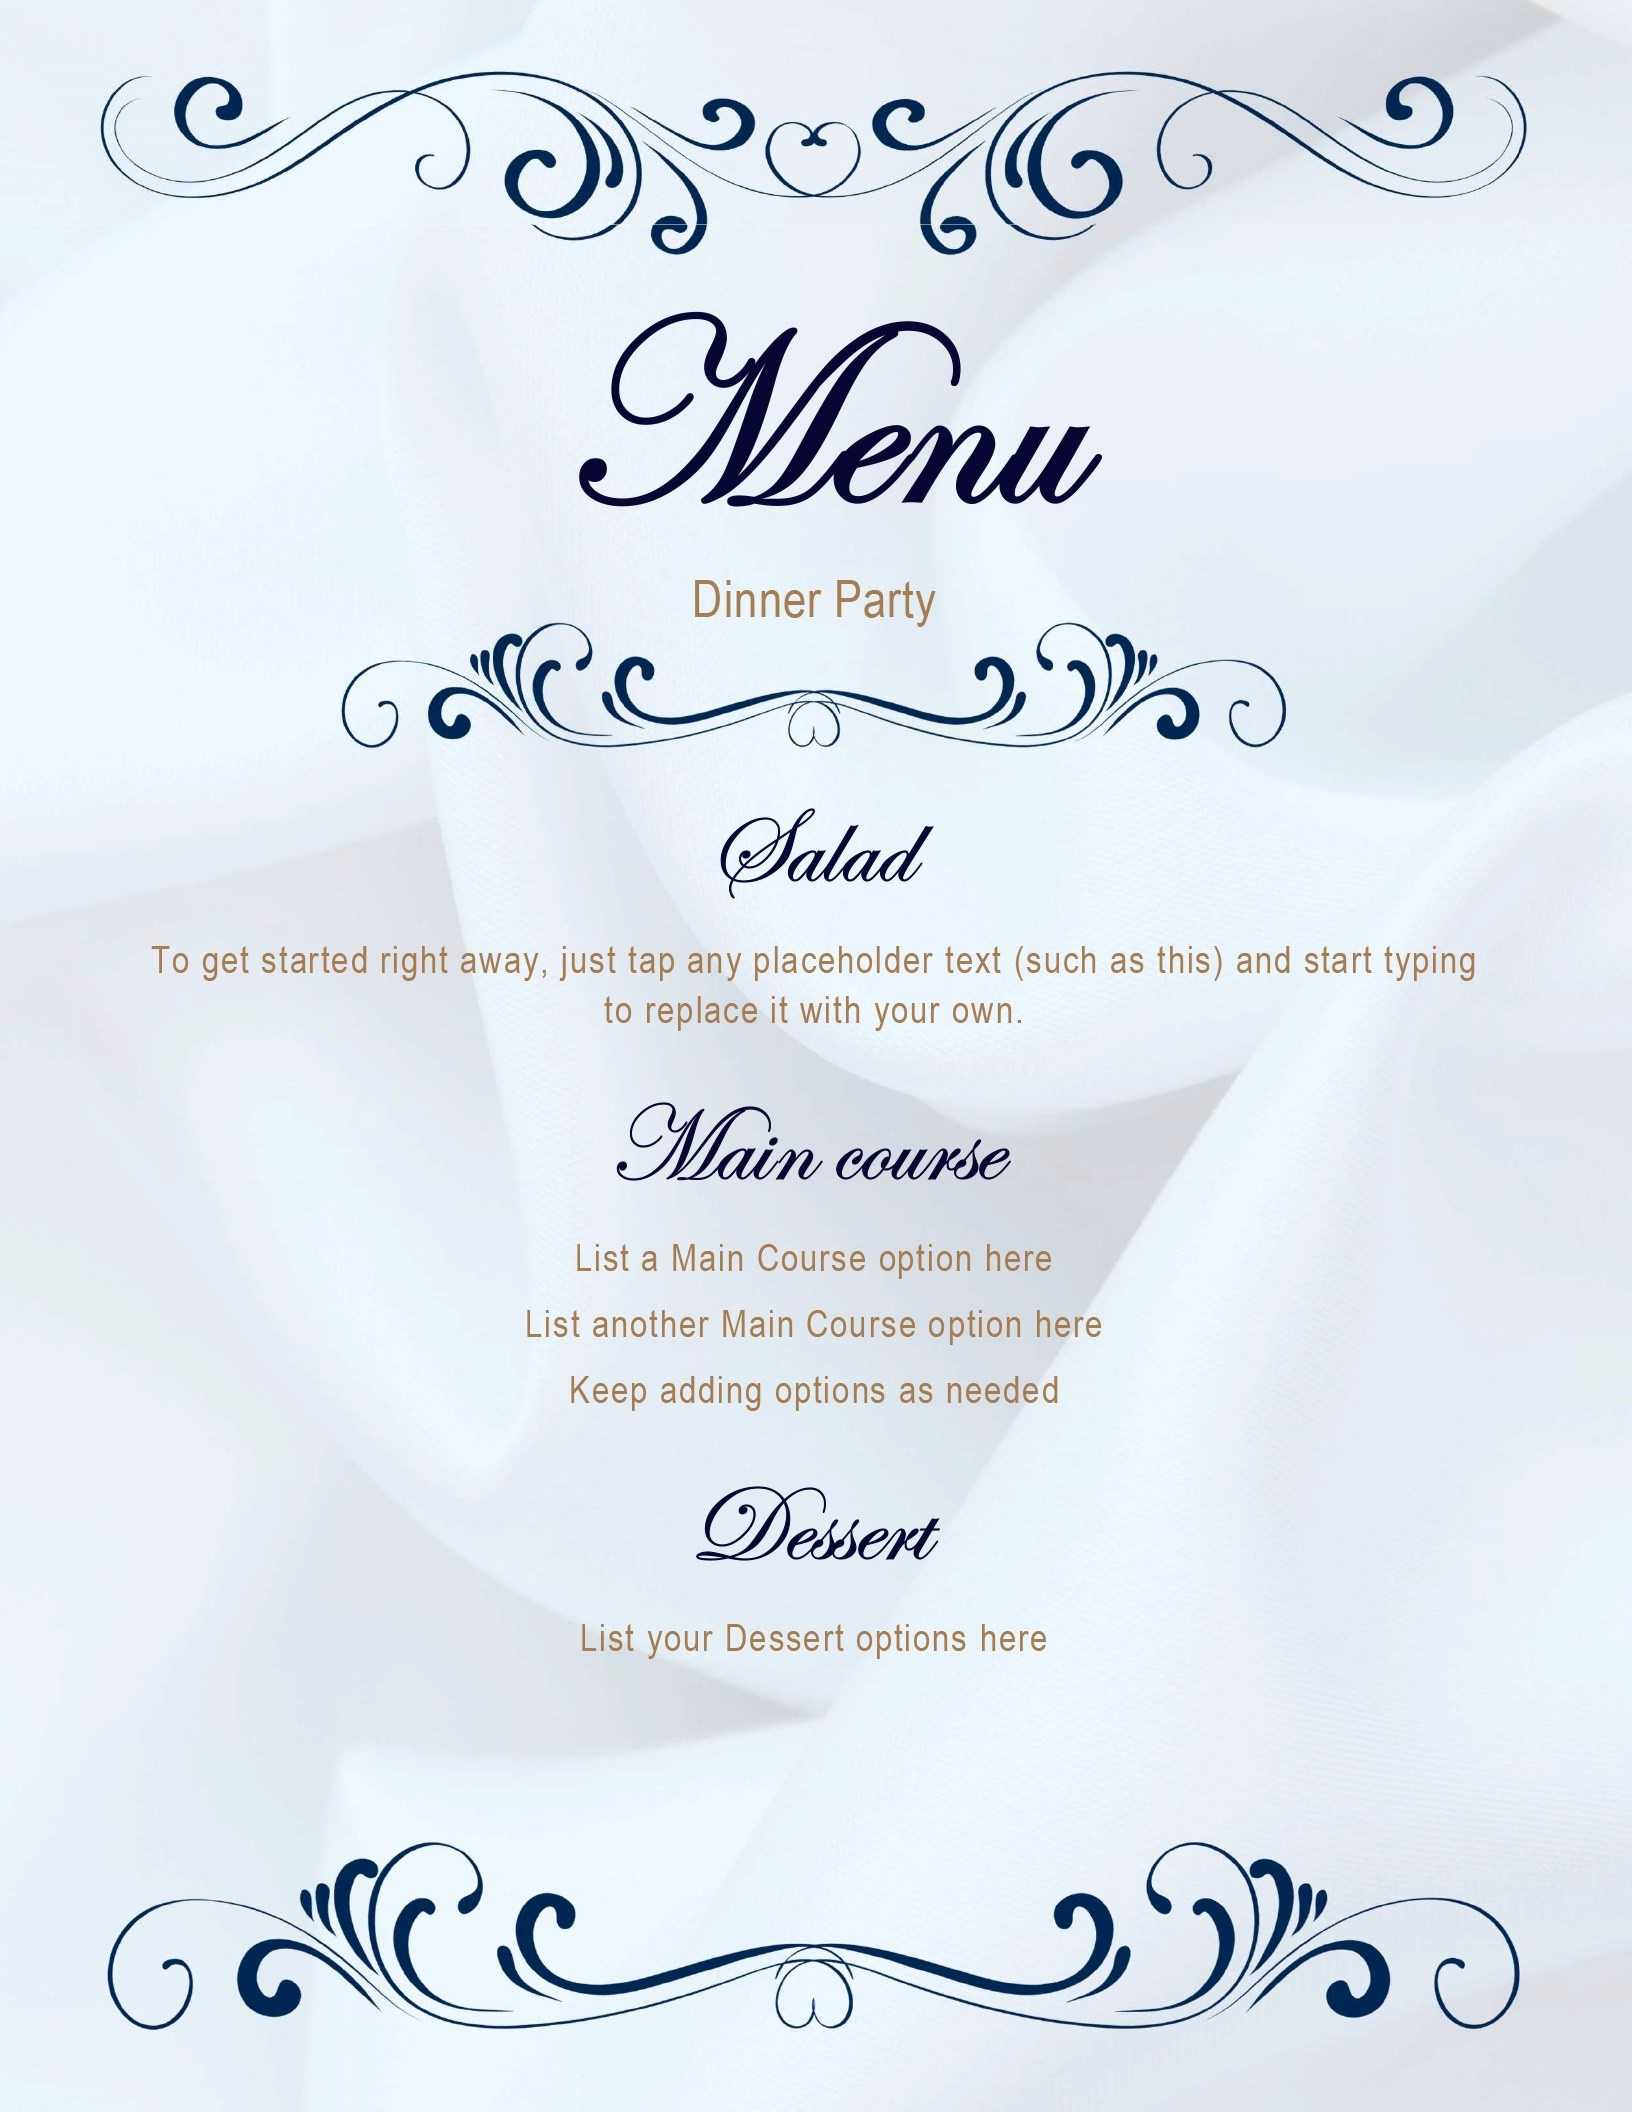 005 Menus Office Free Printable Dinner Party Menu Template Pertaining To Free Printable Menu Template